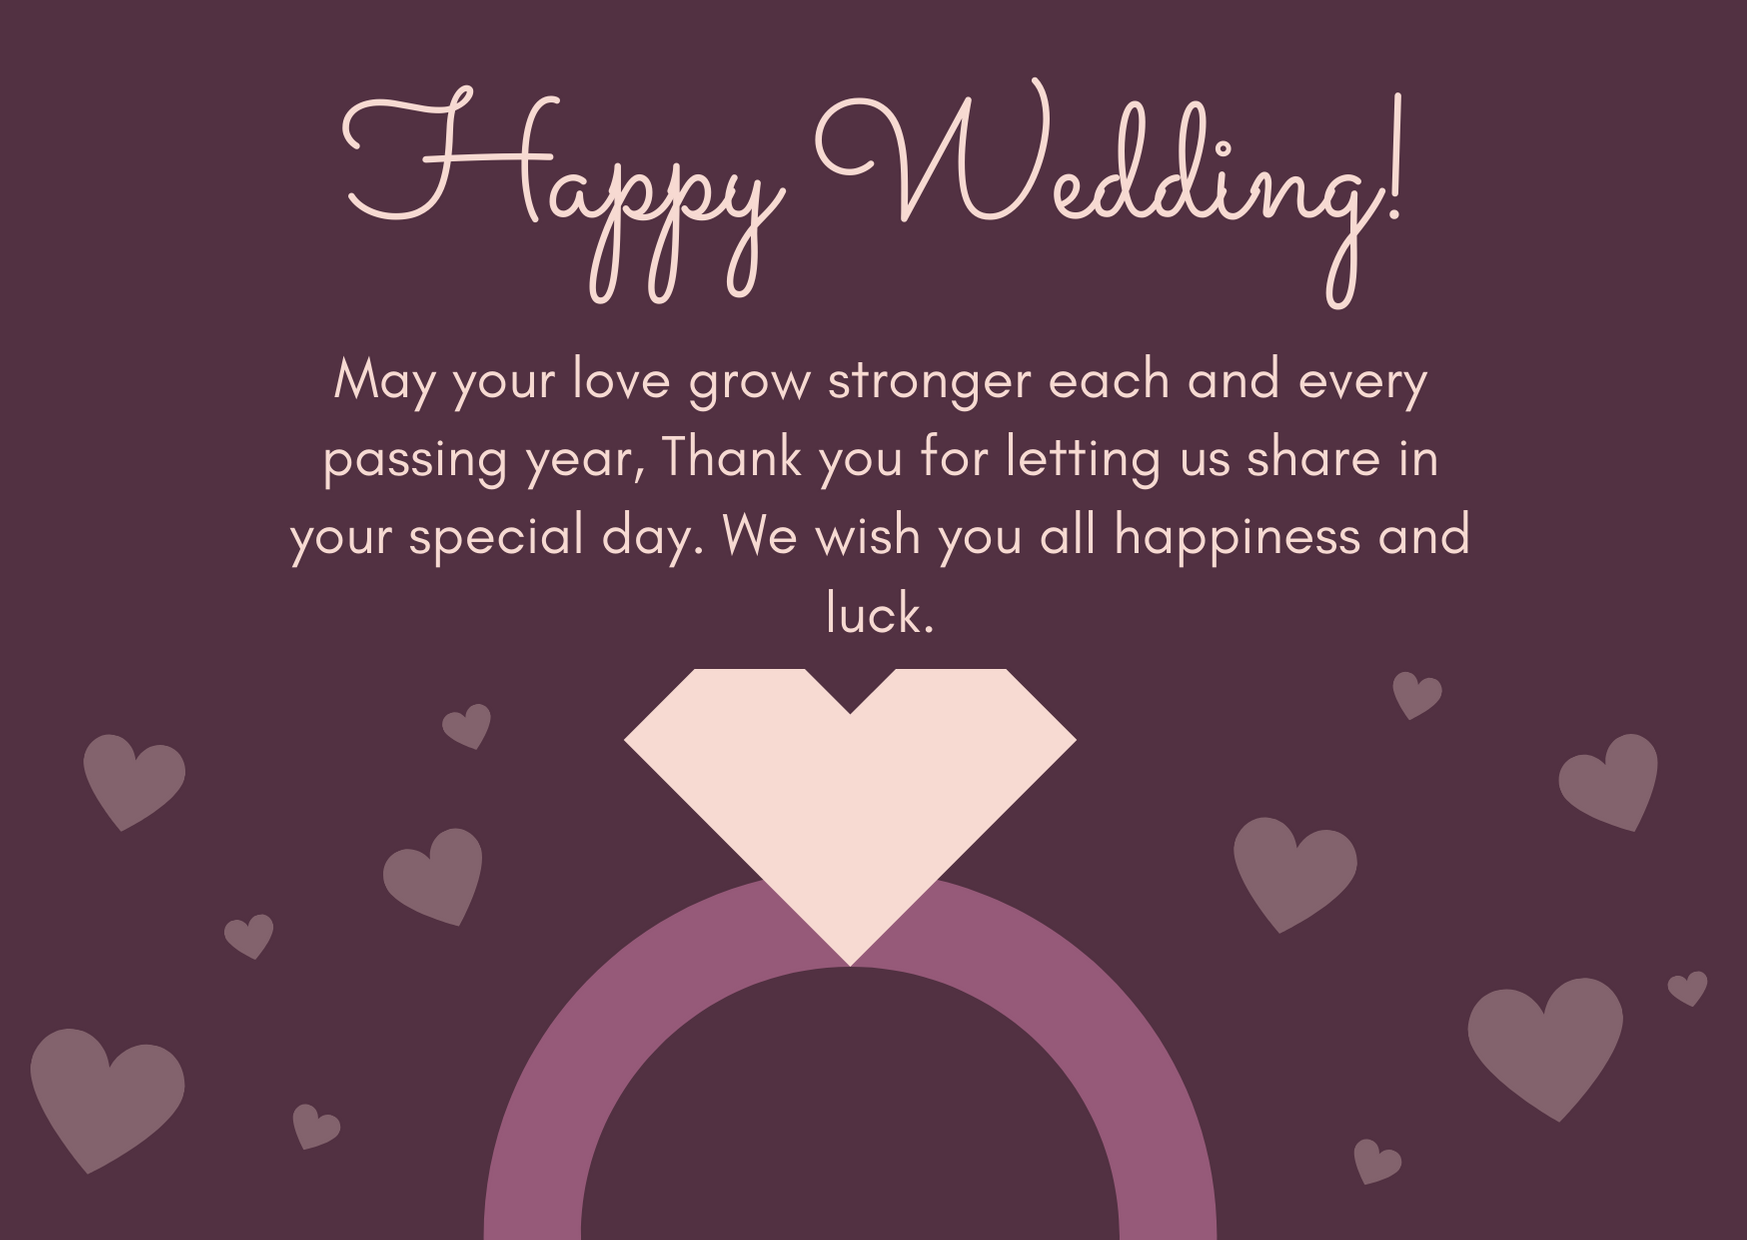 wishes for marriage day to friend